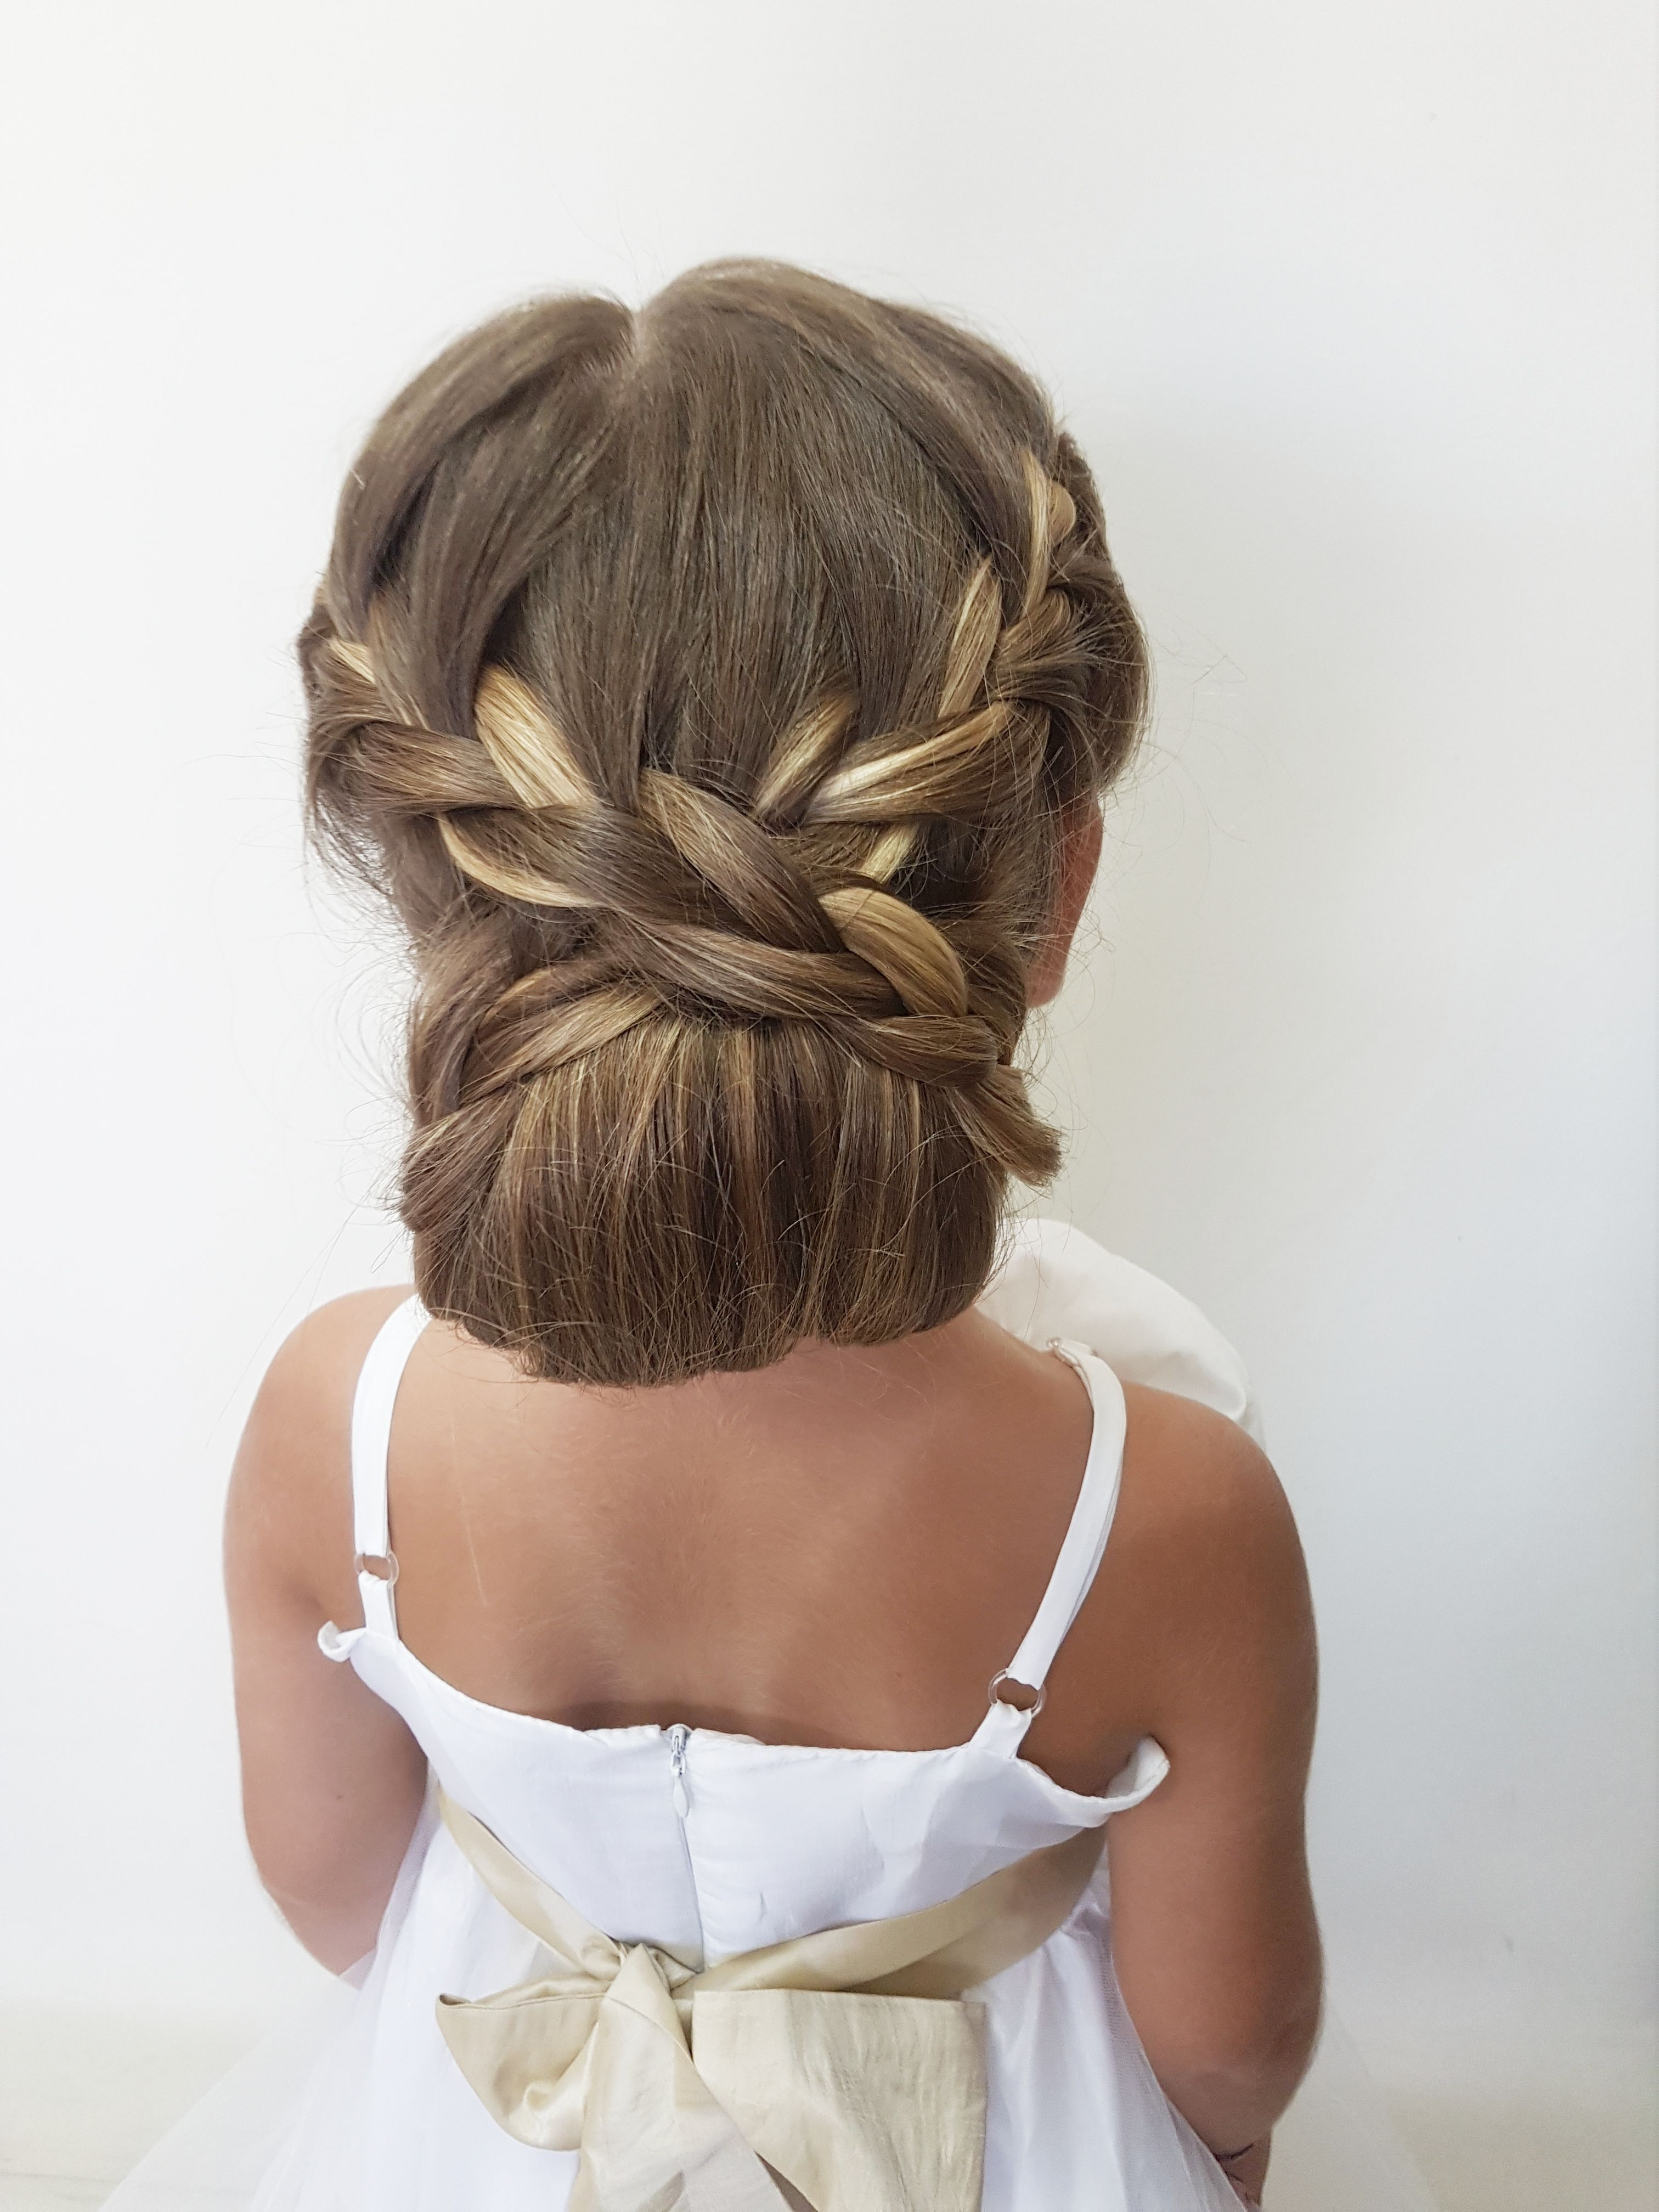 pin by anne'beth on annebeth. in 2019 | wedding hairstyles